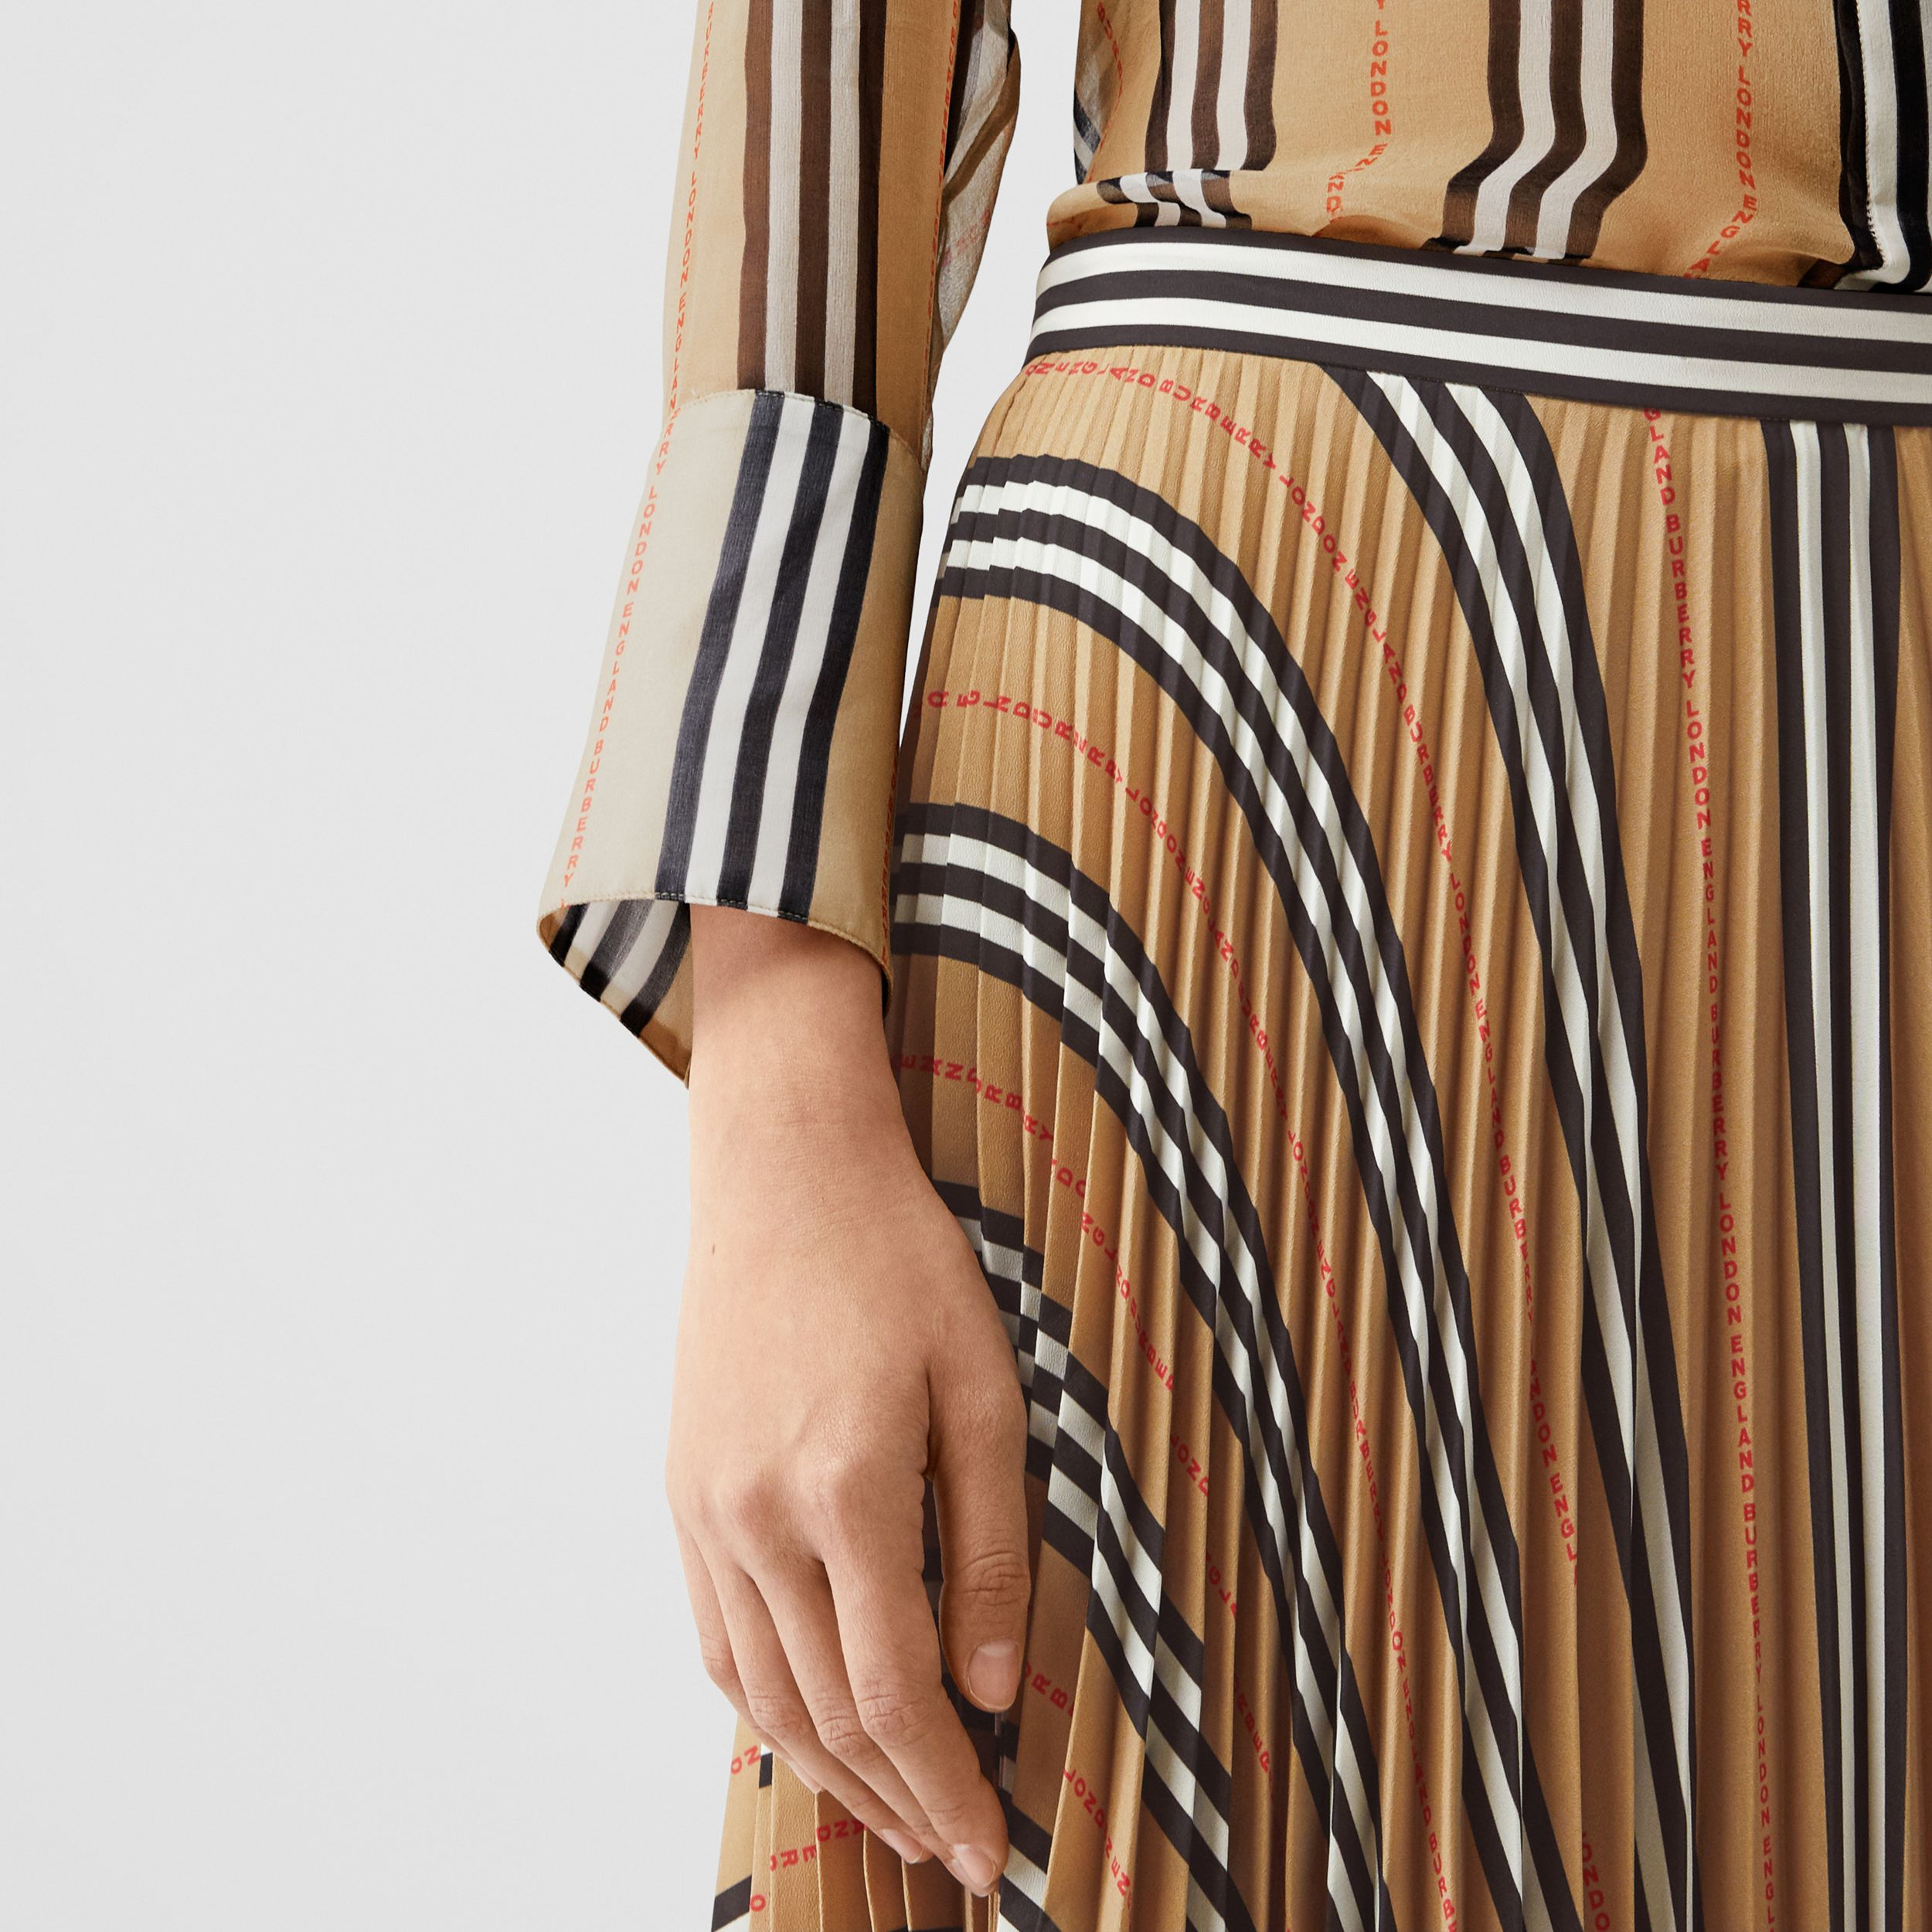 Logo and Stripe Print Crepe Pleated Skirt in Archive Beige - Women | Burberry Hong Kong S.A.R - 2